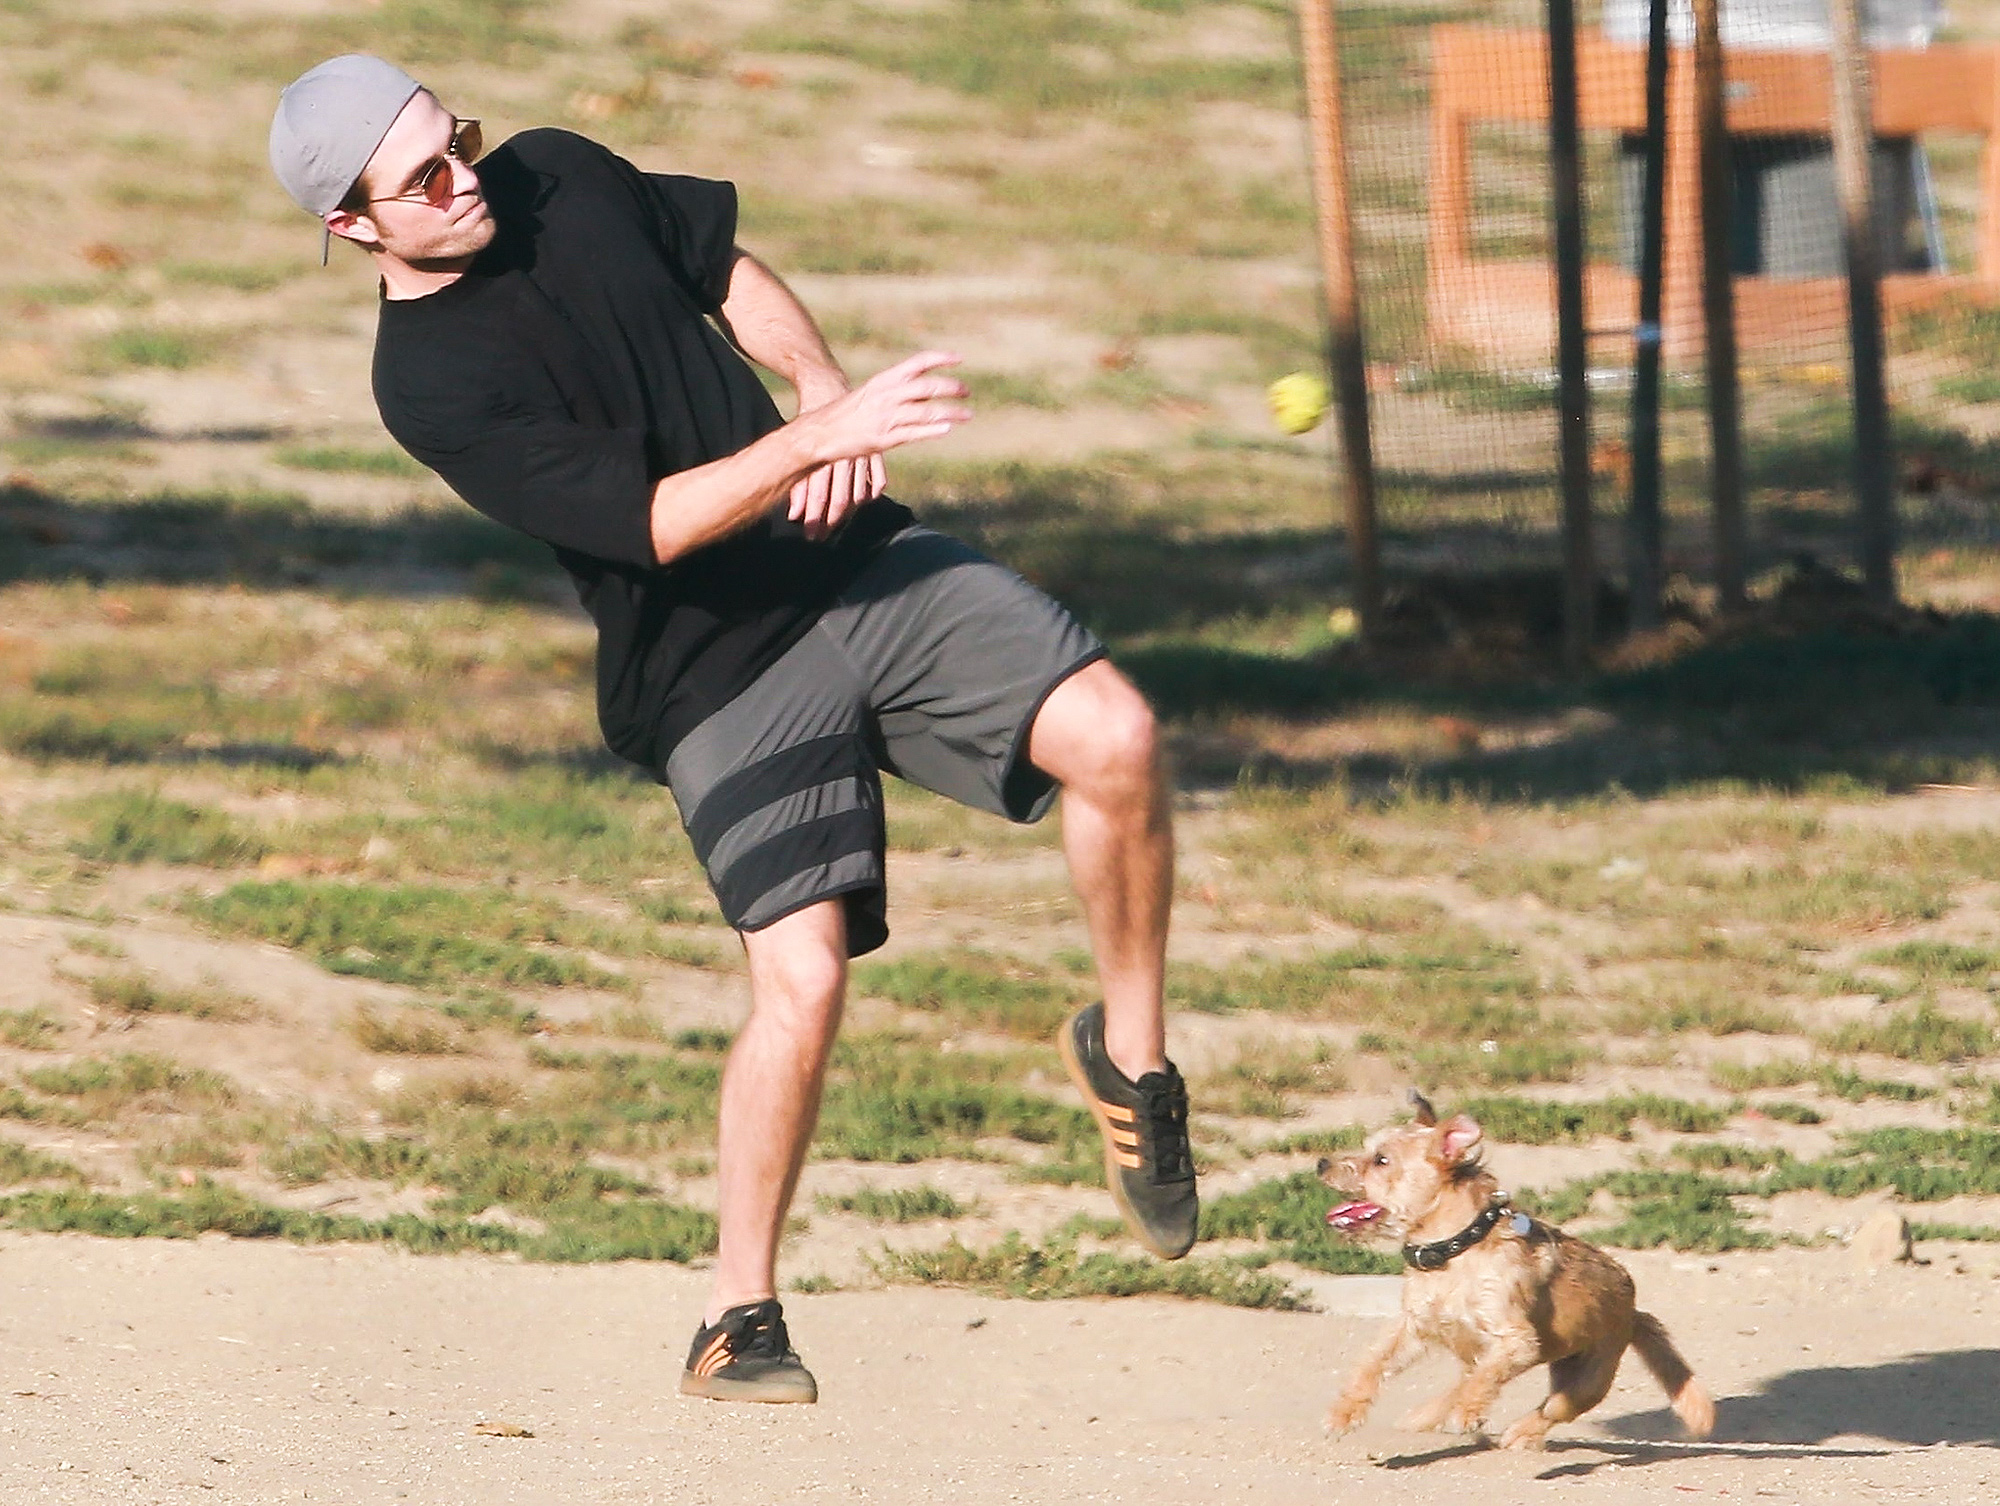 *EXCLUSIVE* Robert Pattinson and his furry friend enjoy an afternoon at the Dog Park